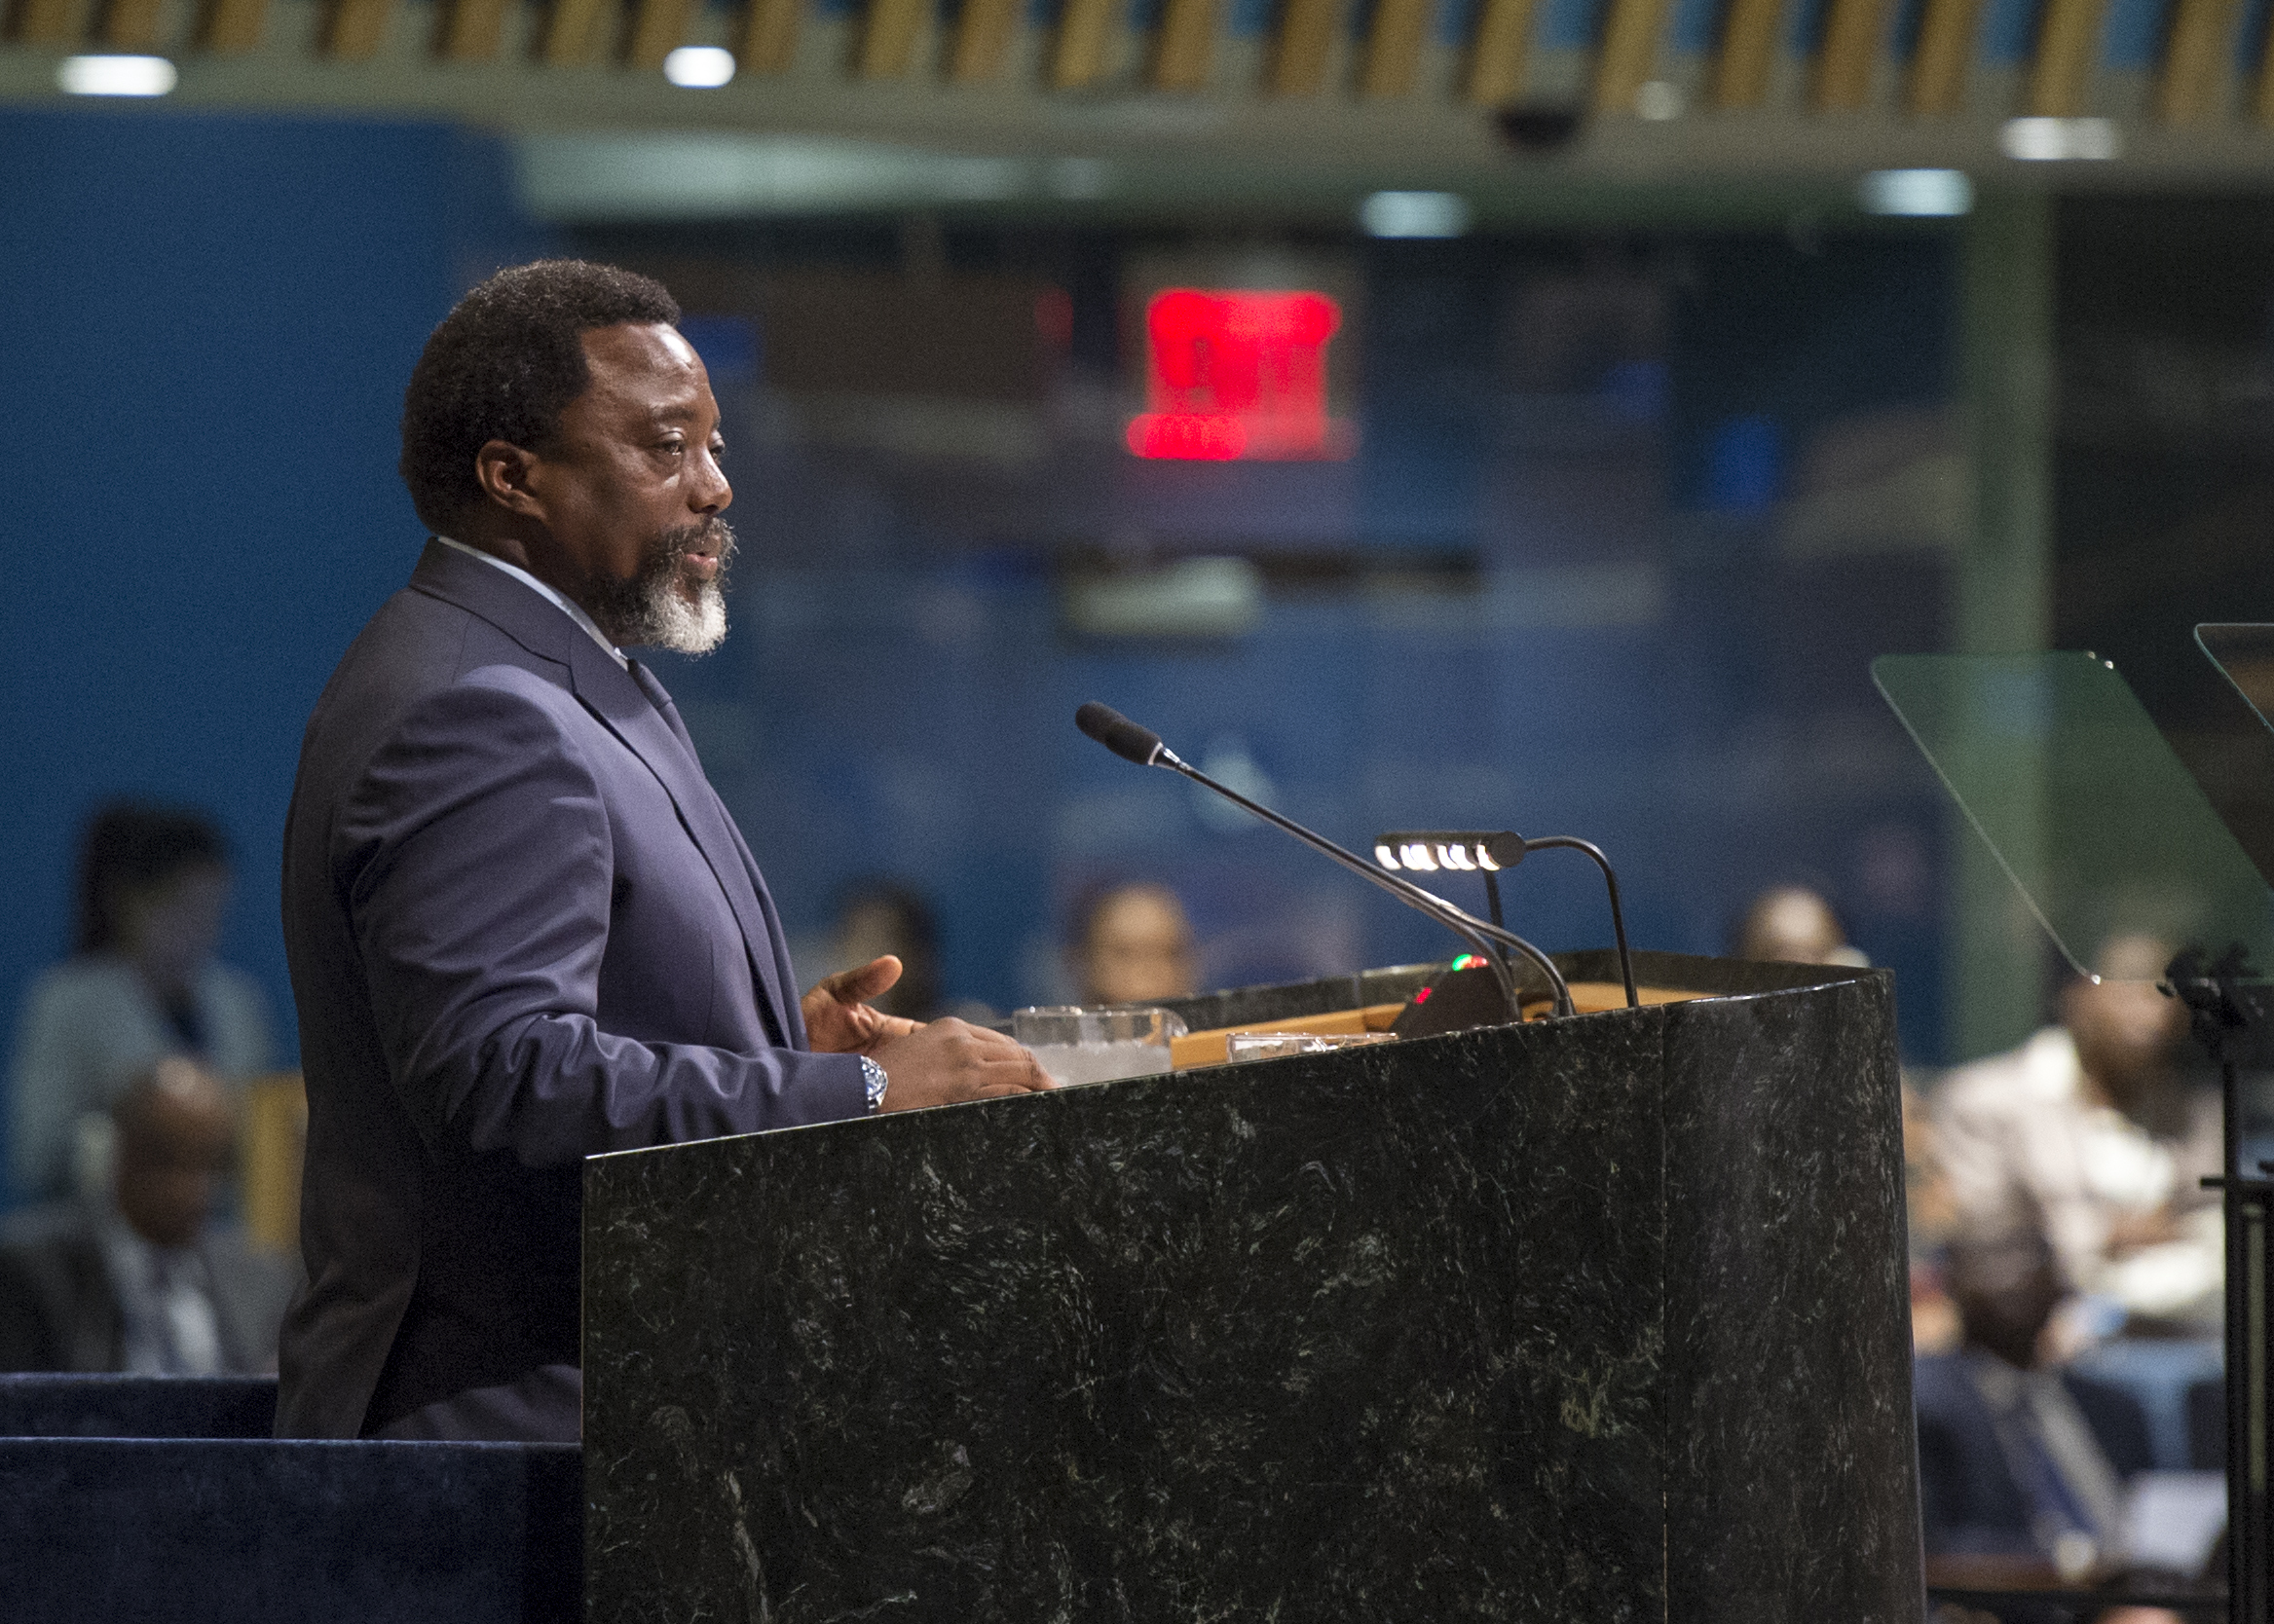 Joseph Kabila Kabange, President of the Democratic Republic of the Congo, stands in profile at a podium